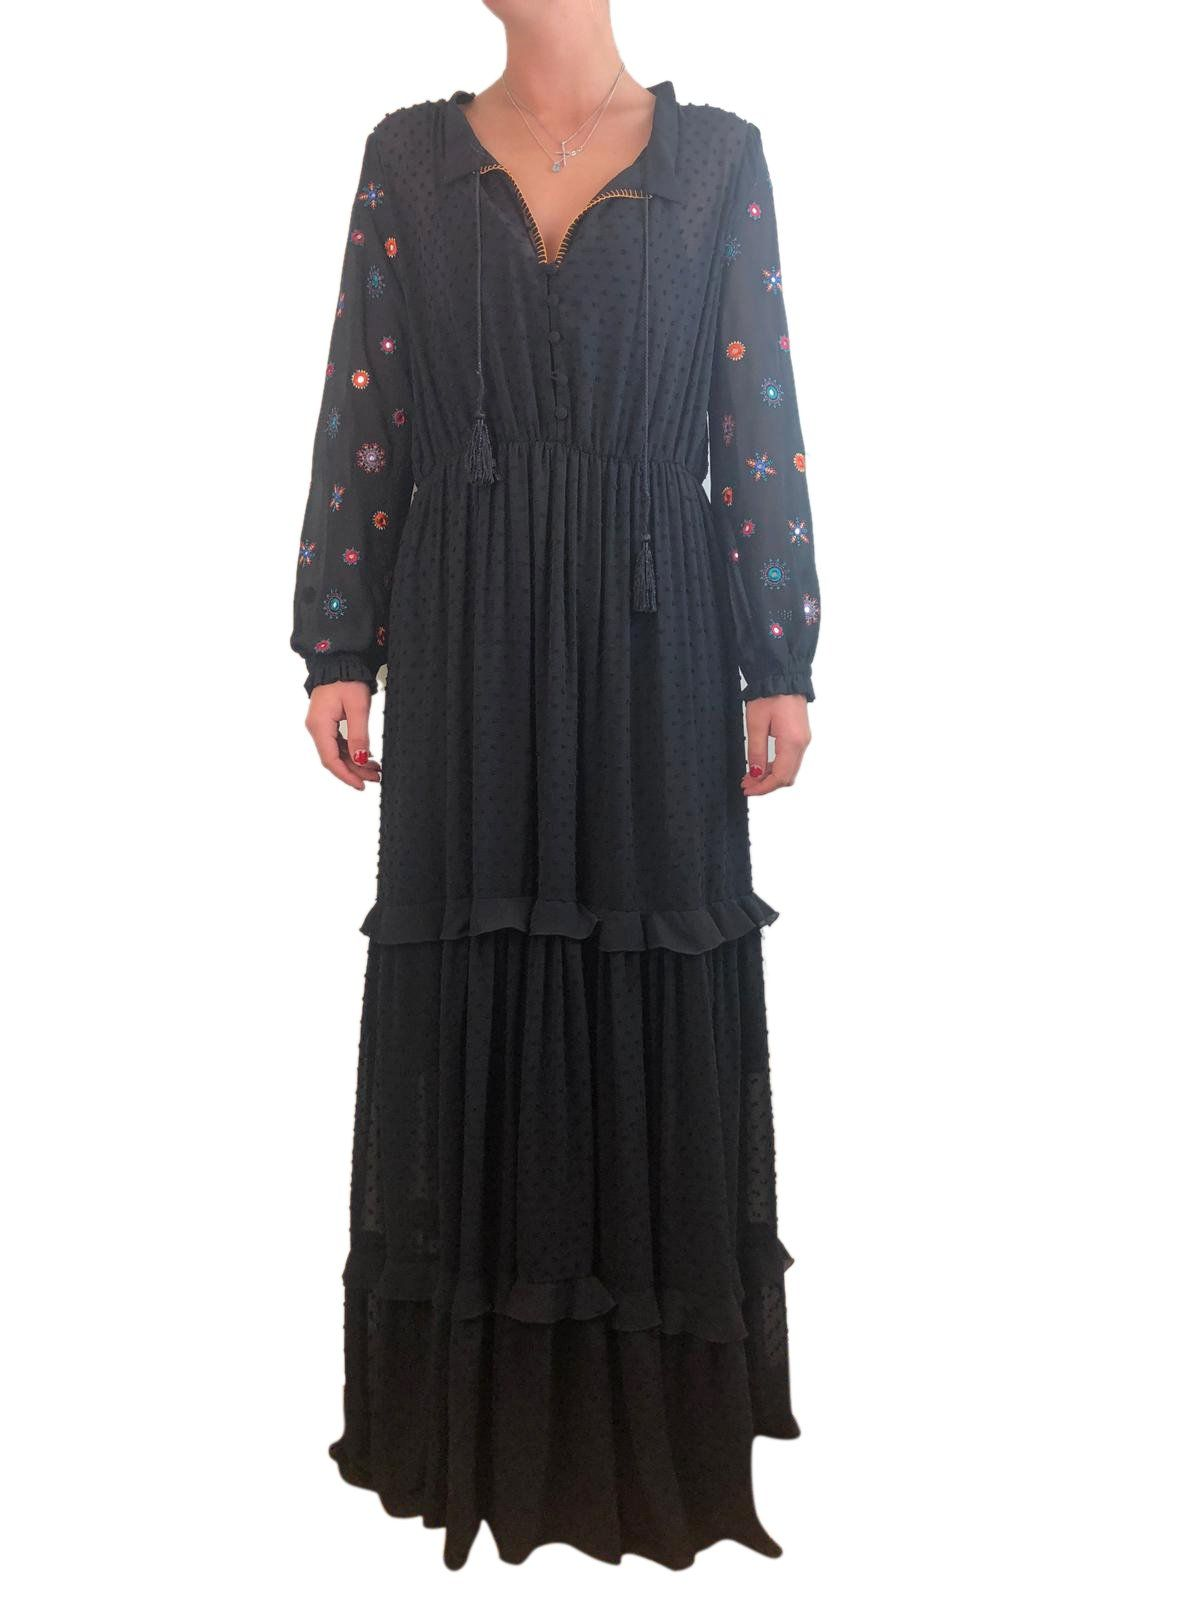 69a857b1 Saloni Black Floral Embroidered Maxi Dress Size 12 RRP £625 in 2019 |  designer bags & shoes New in | Dresses, Fashion, Floral